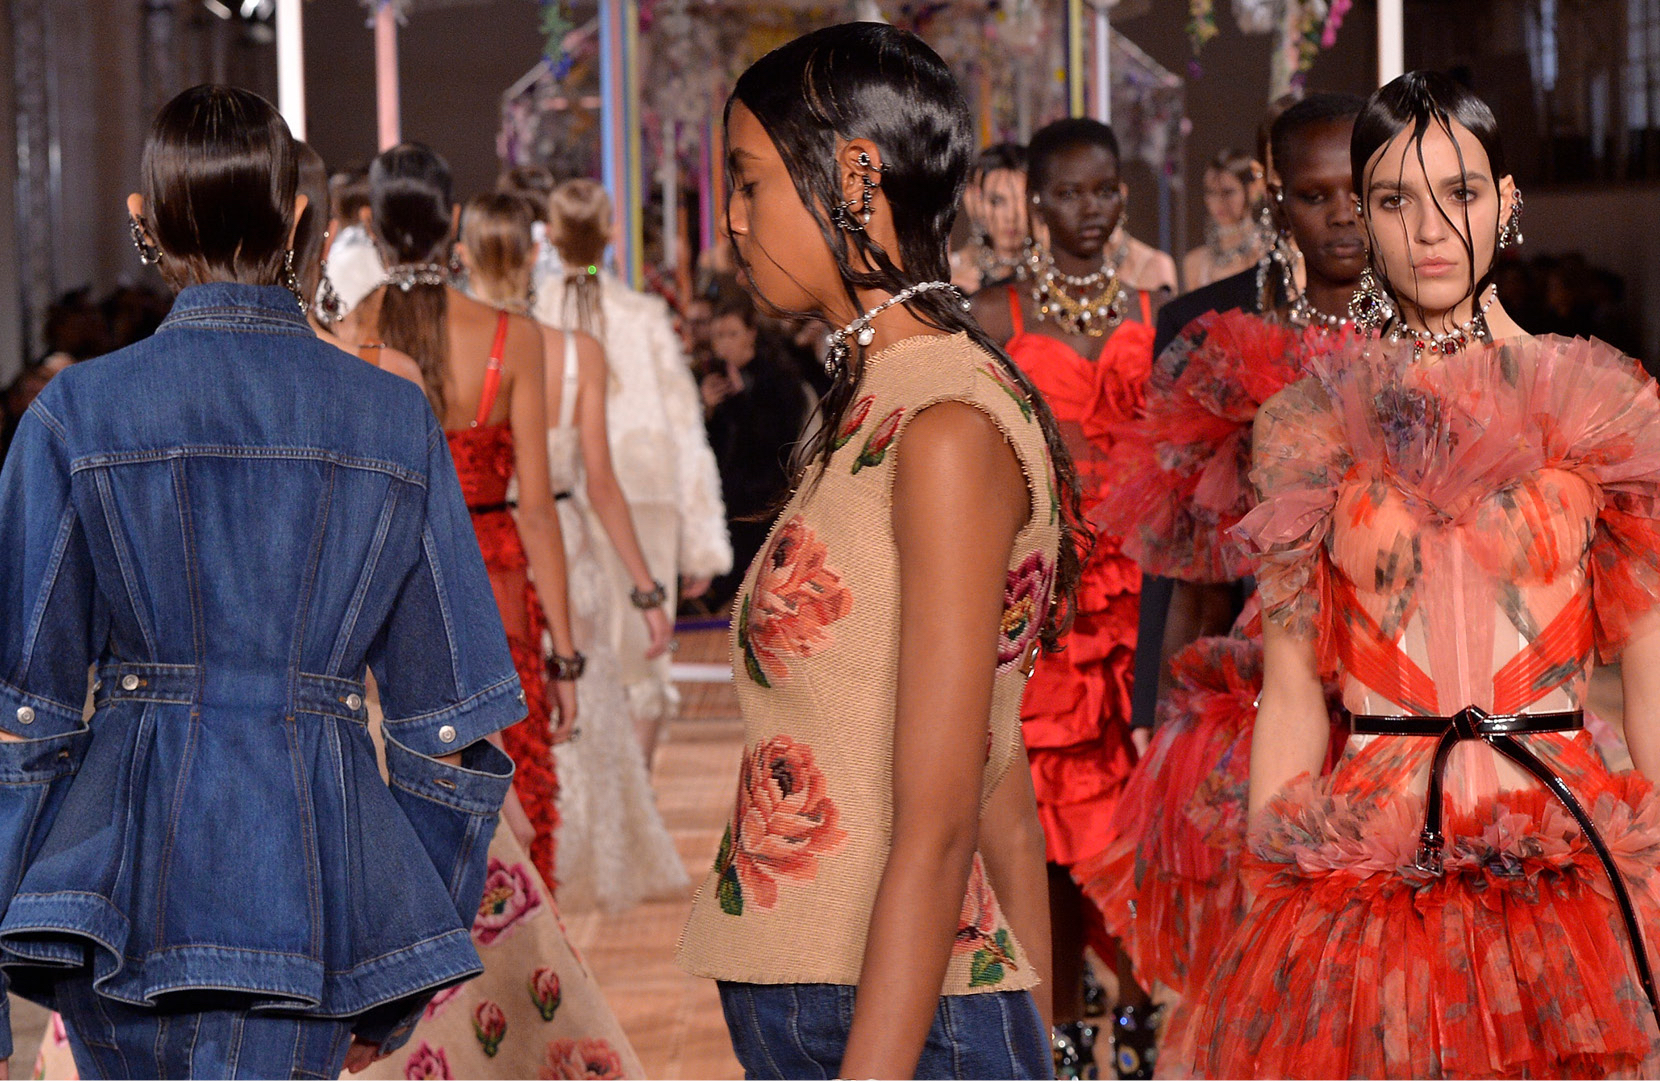 Alexander mcqueen designer fashion and luxury clothing ss18 womens show junglespirit Image collections